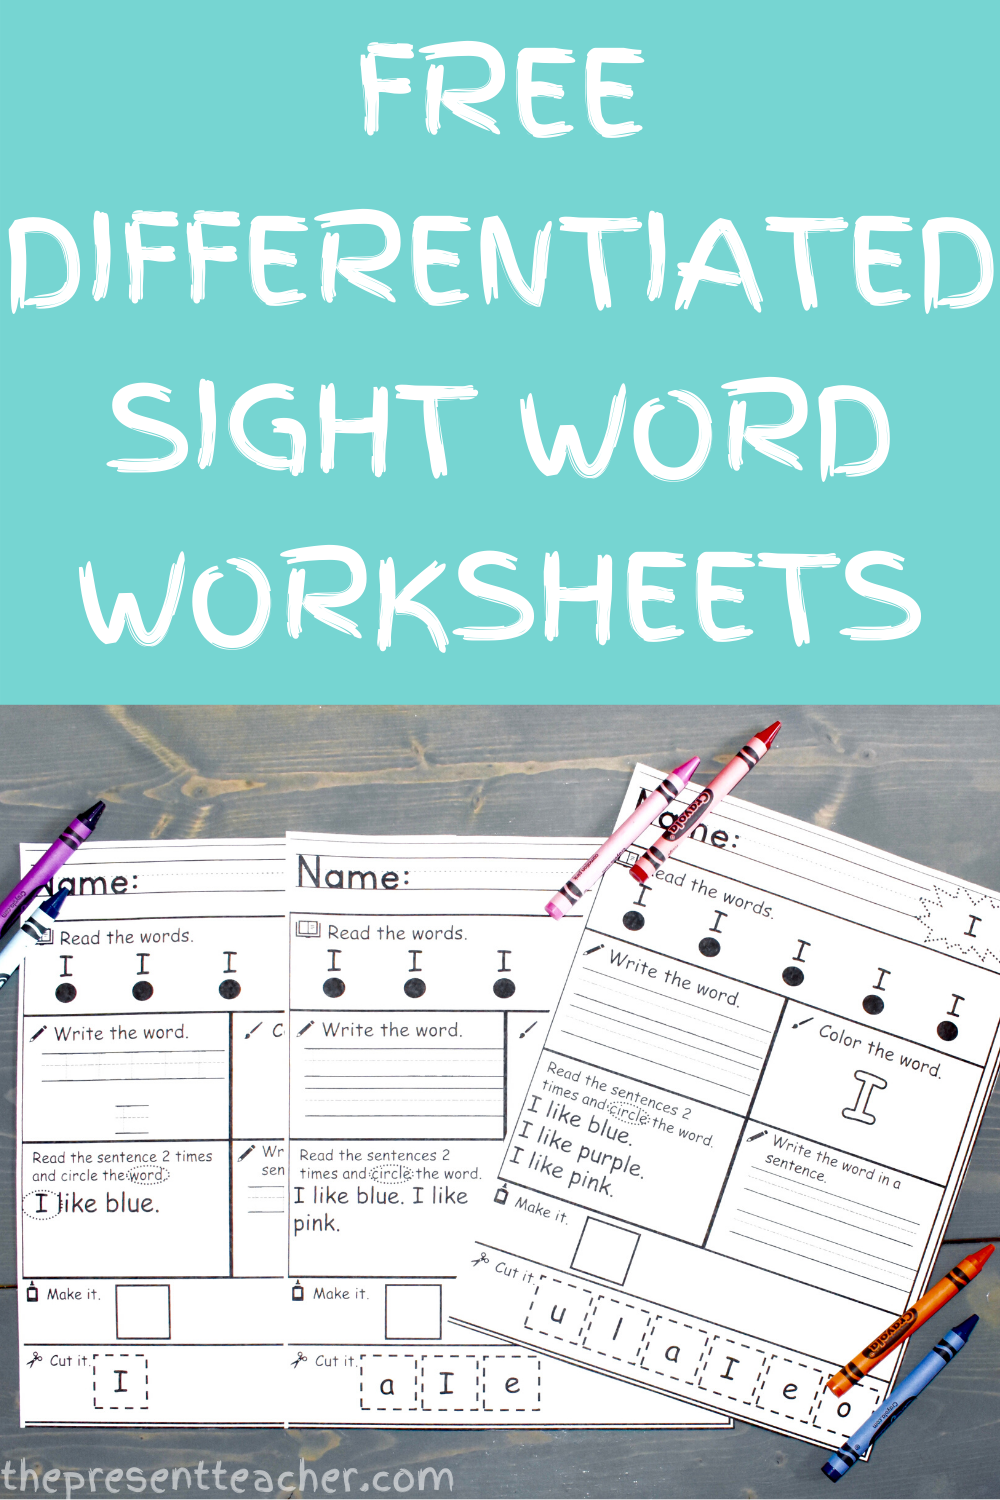 Free Differentiated Sight Word Worksheet Sight Word Worksheets Teaching Sight Words Sight Words [ 1500 x 1000 Pixel ]